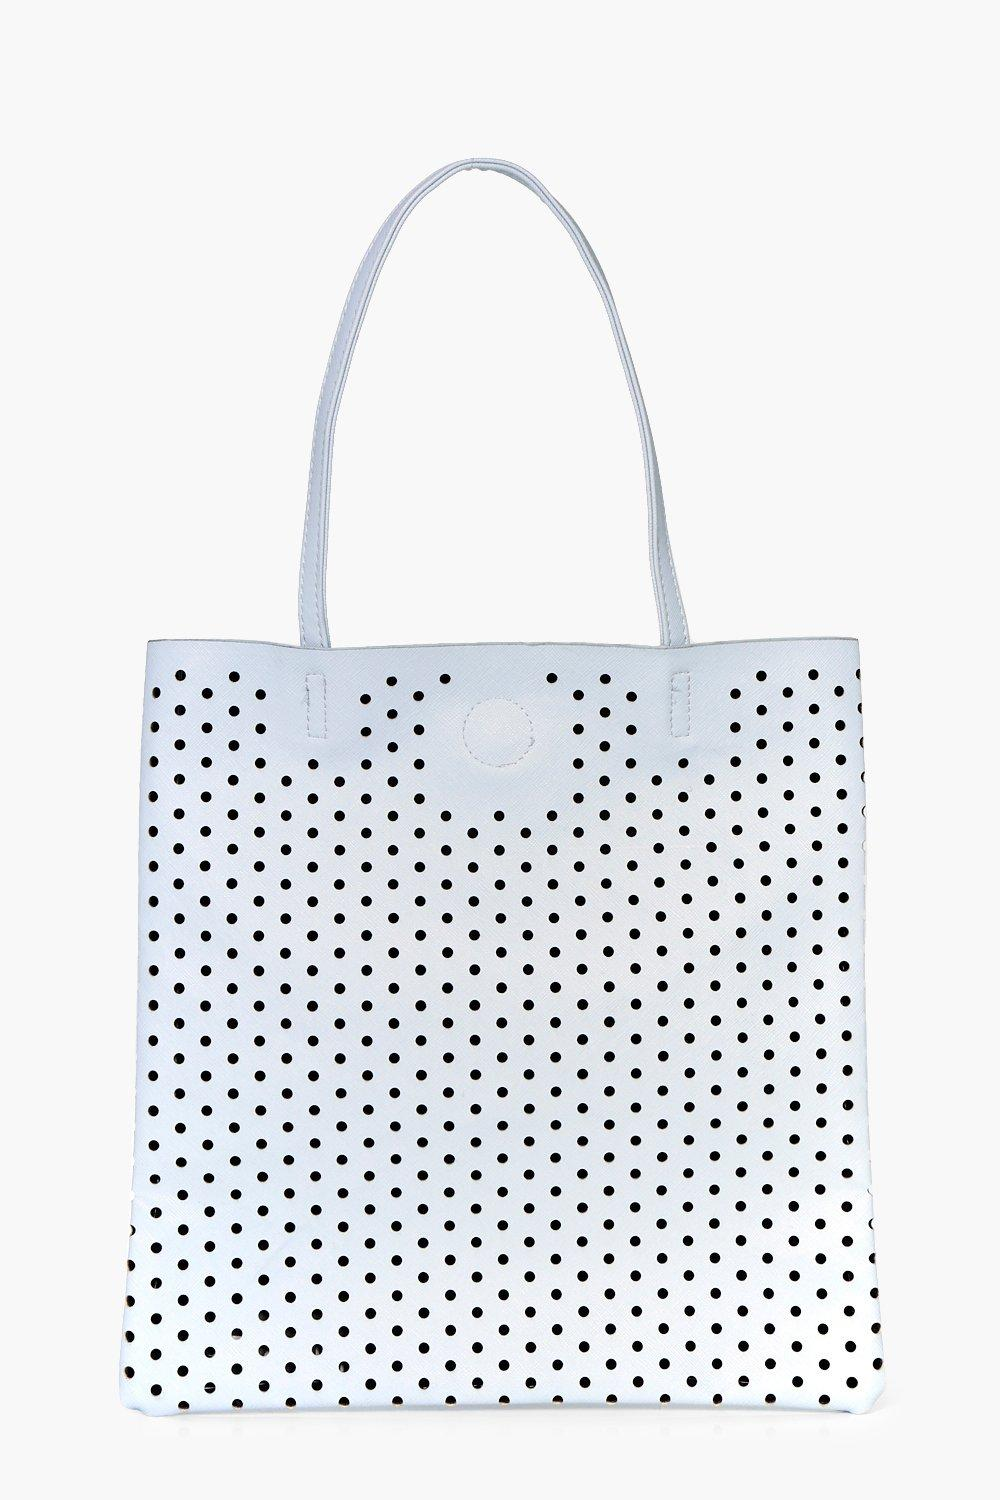 Lazercut Perforated Shopper Bag - blue - Macie Laz